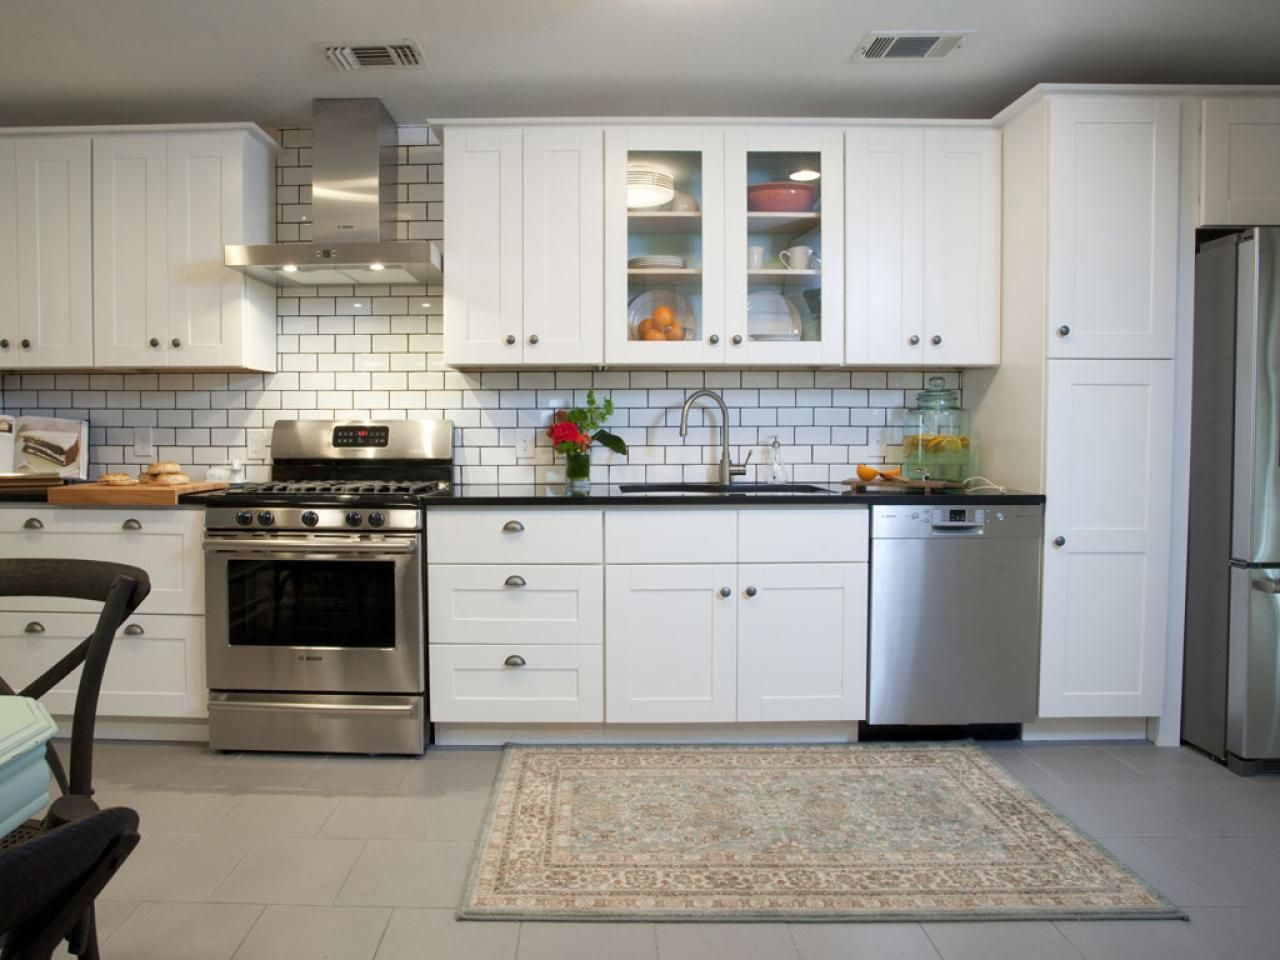 property brothers kitchen designs. property brothers kitchen